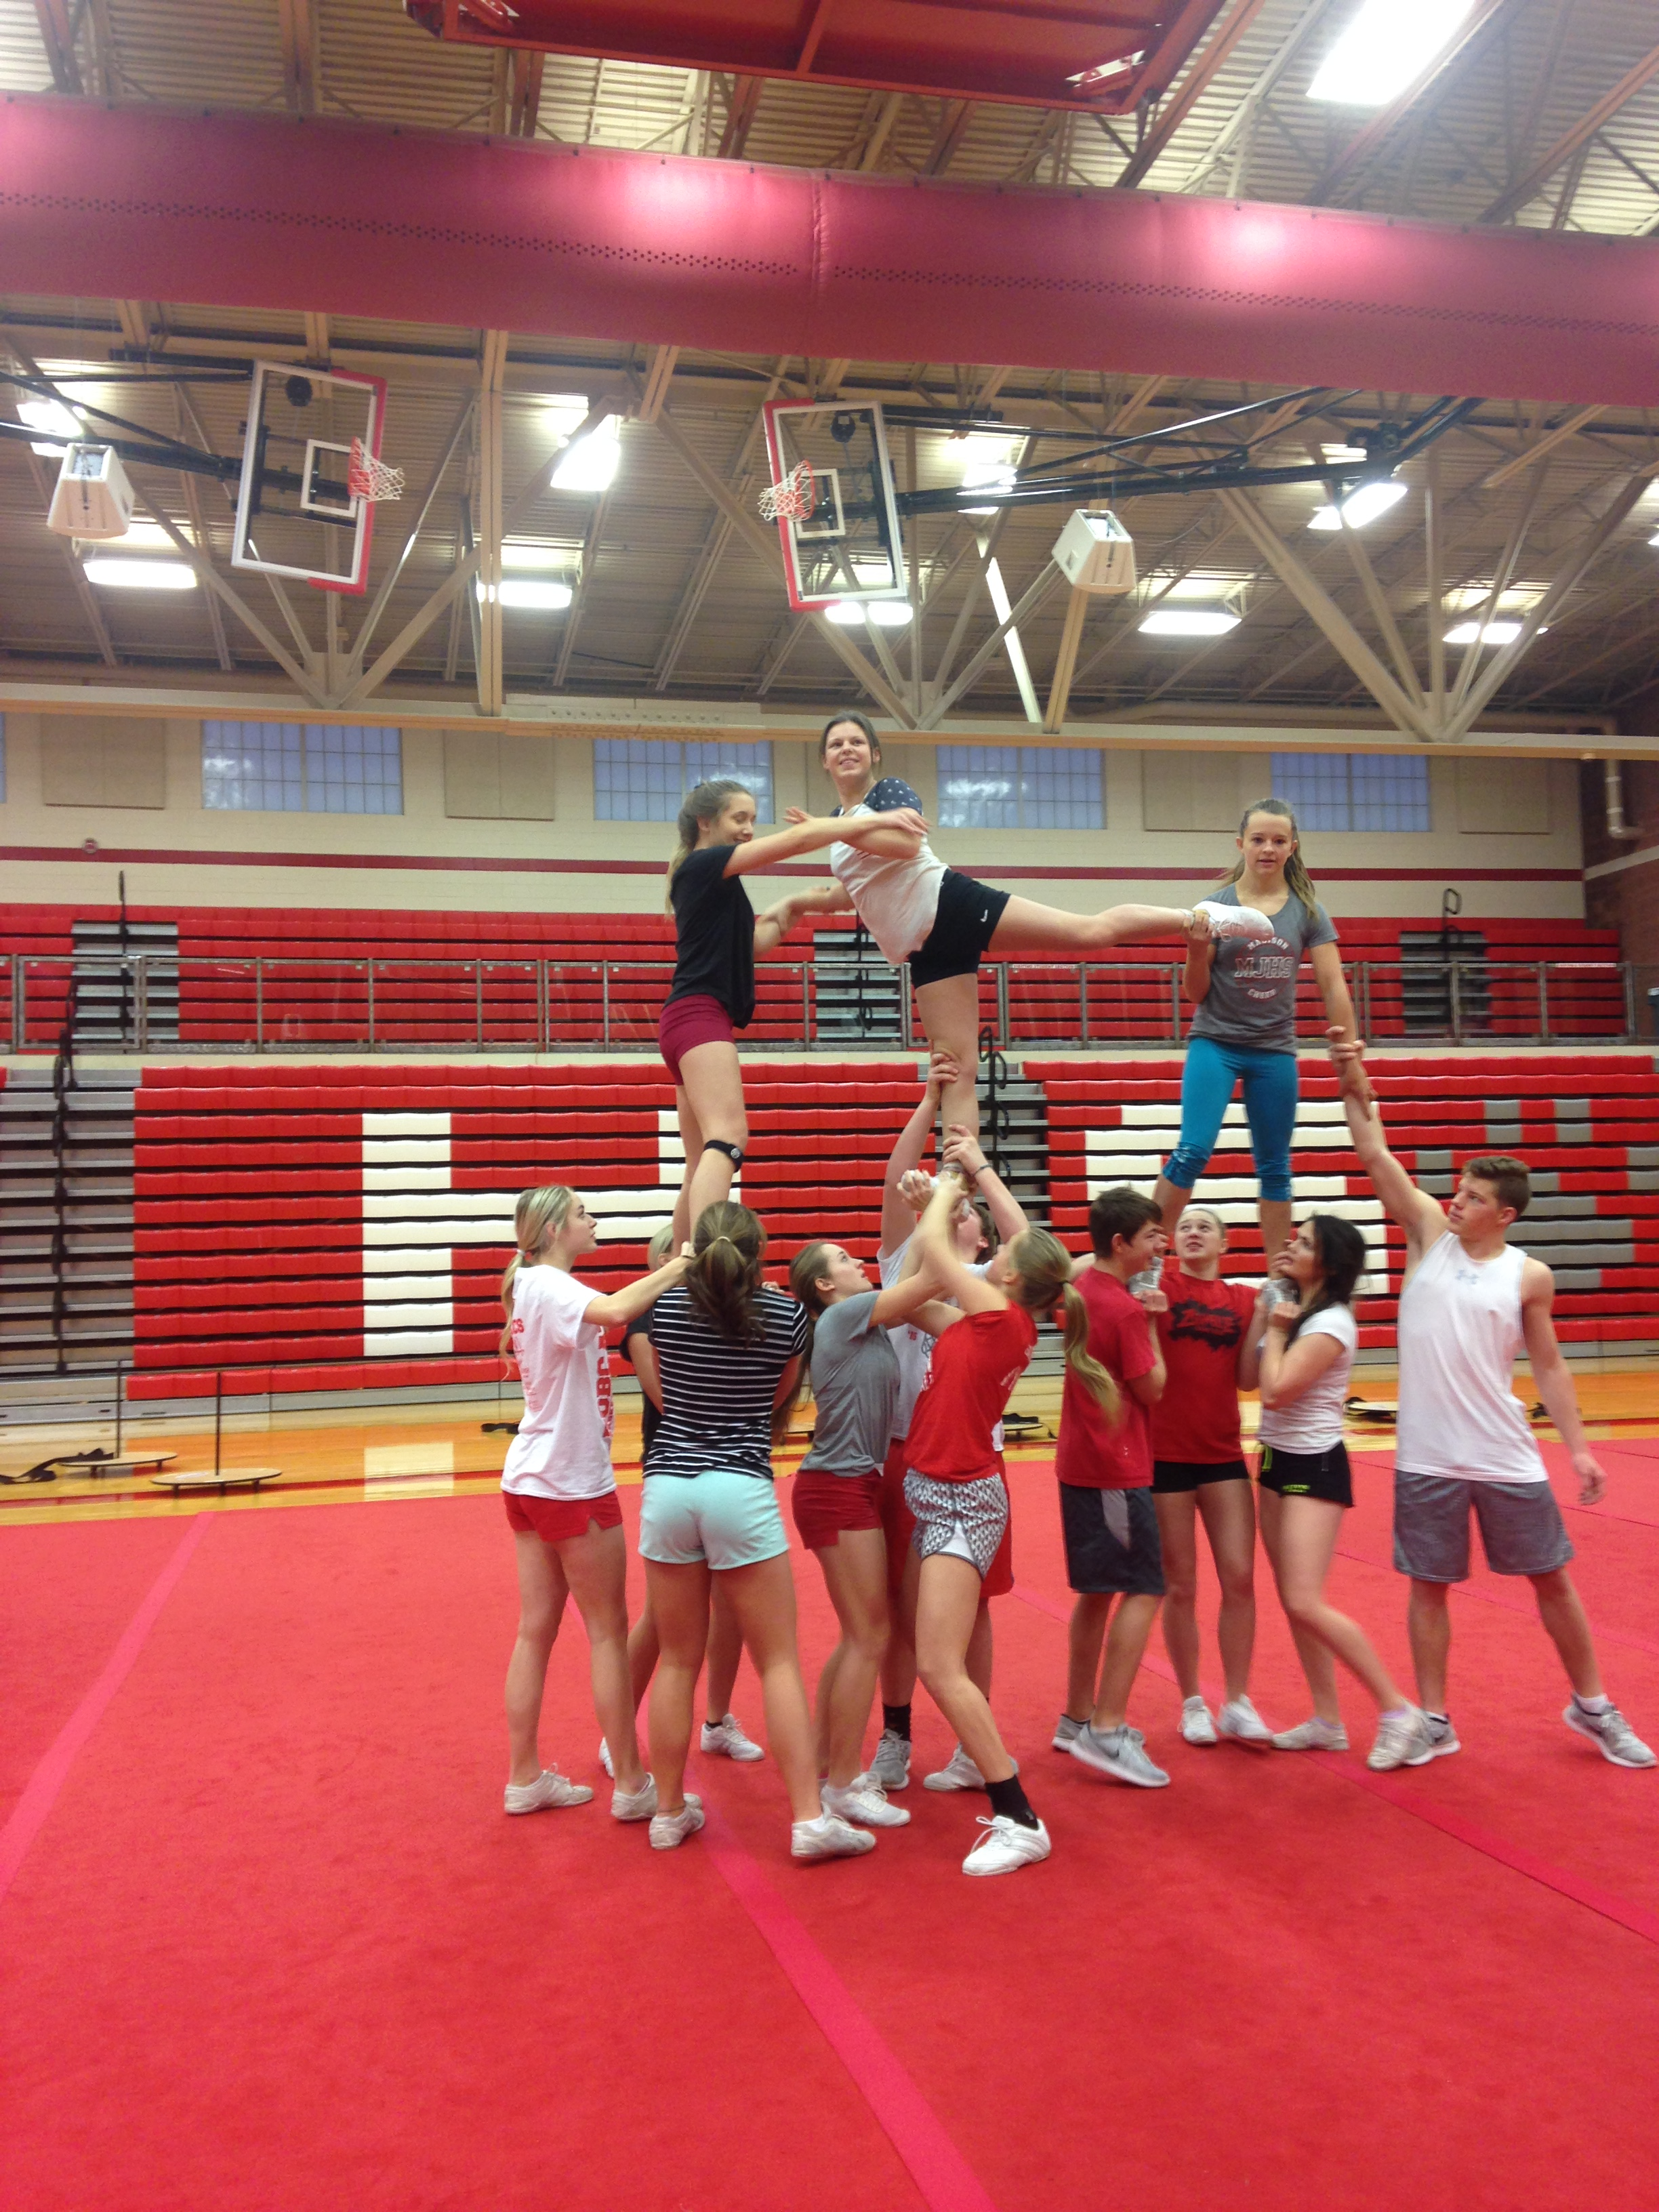 MHS practice for their upcoming competiton